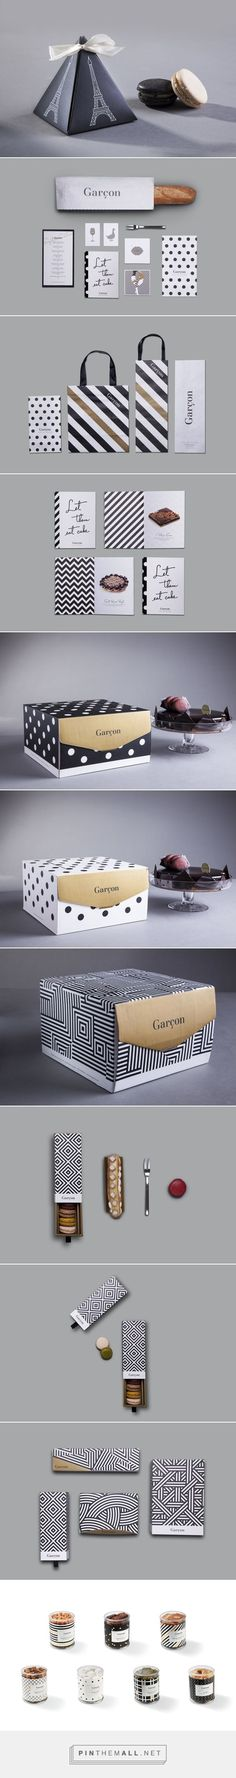 Garçon on Behance by Brownfox Studio curated by Packaging Diva PD. Some great packaging branding for a French restaurant based in Jakarta.